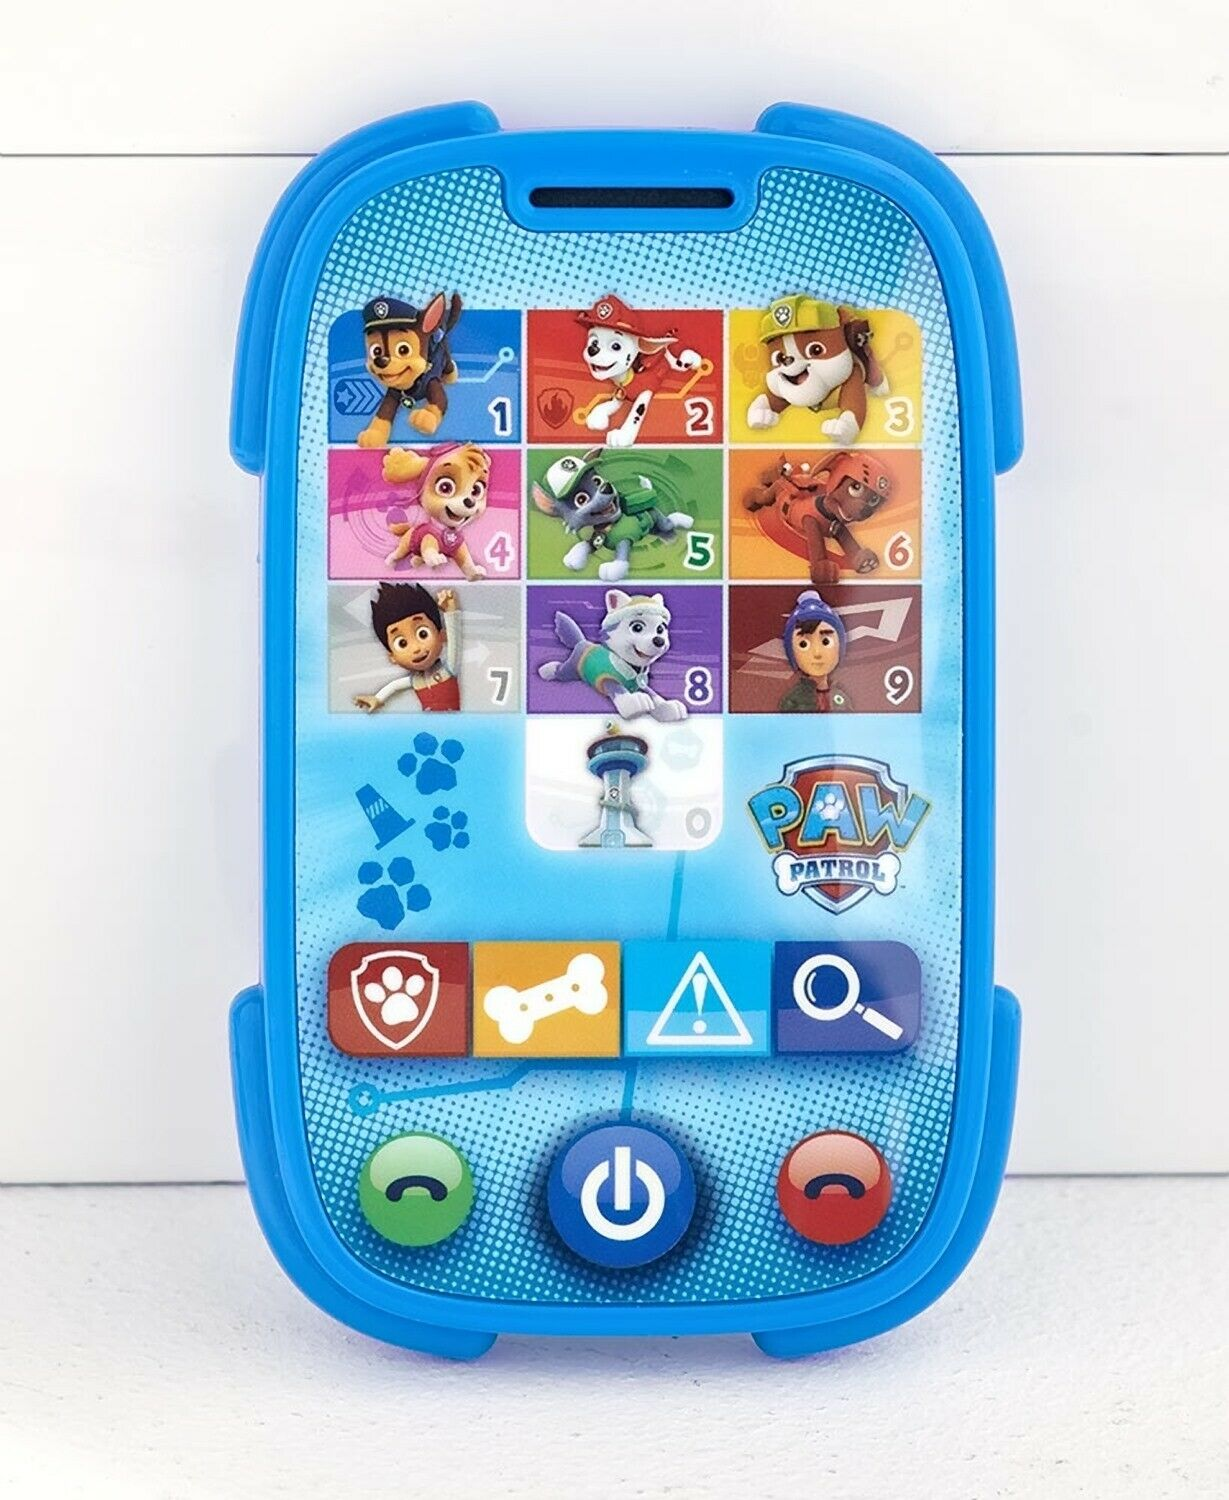 paw patrol fun and learn toy smartphone